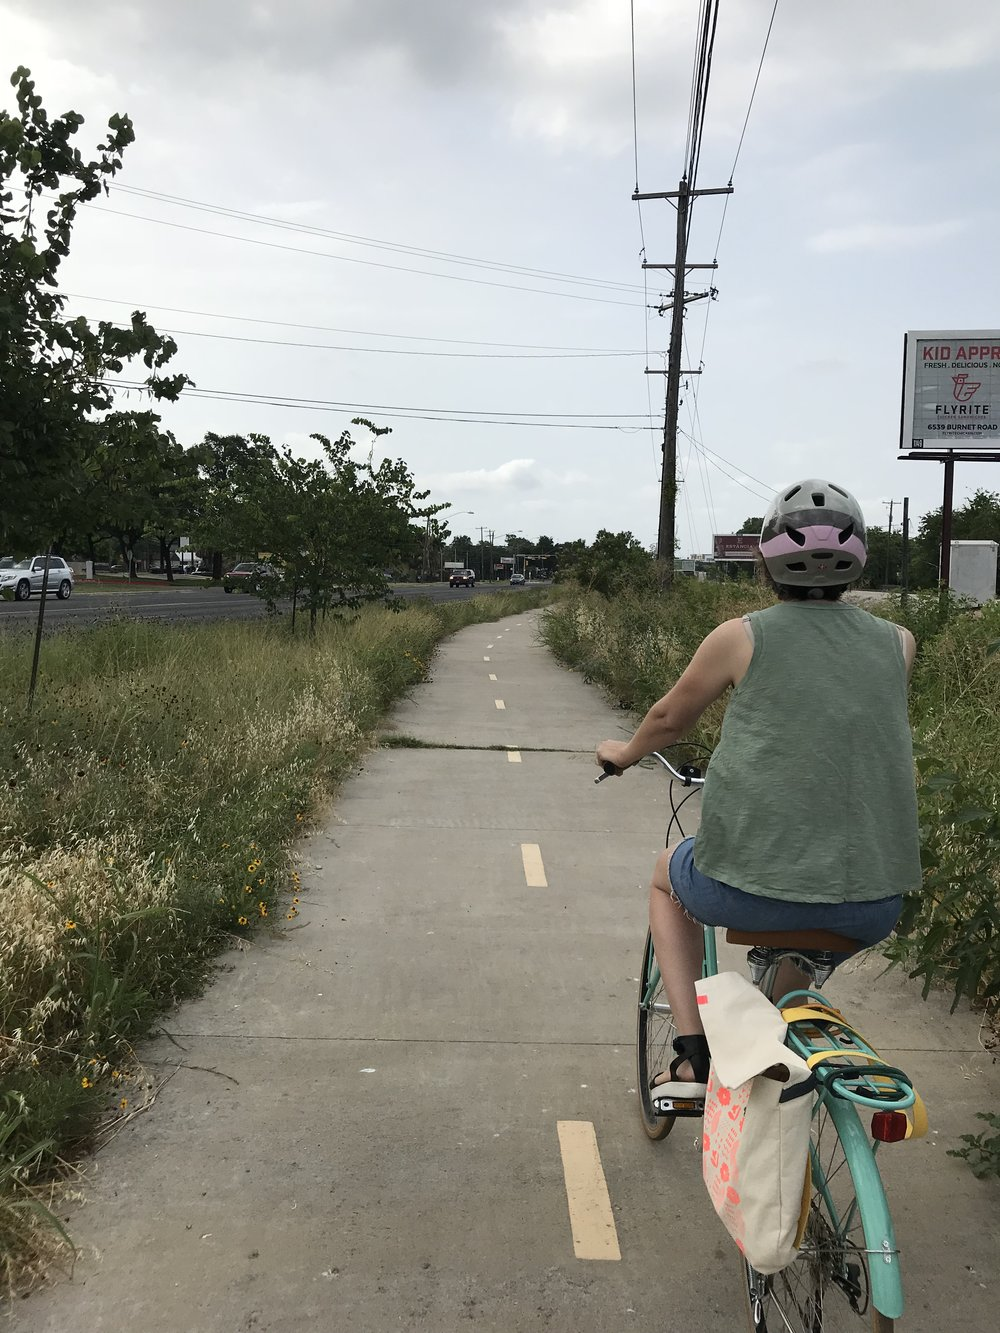 Airport Boulevard Red Line Trail - Beautiful wildflowers line the path, making for an easy and safe ride. Could use some shade trees, however...